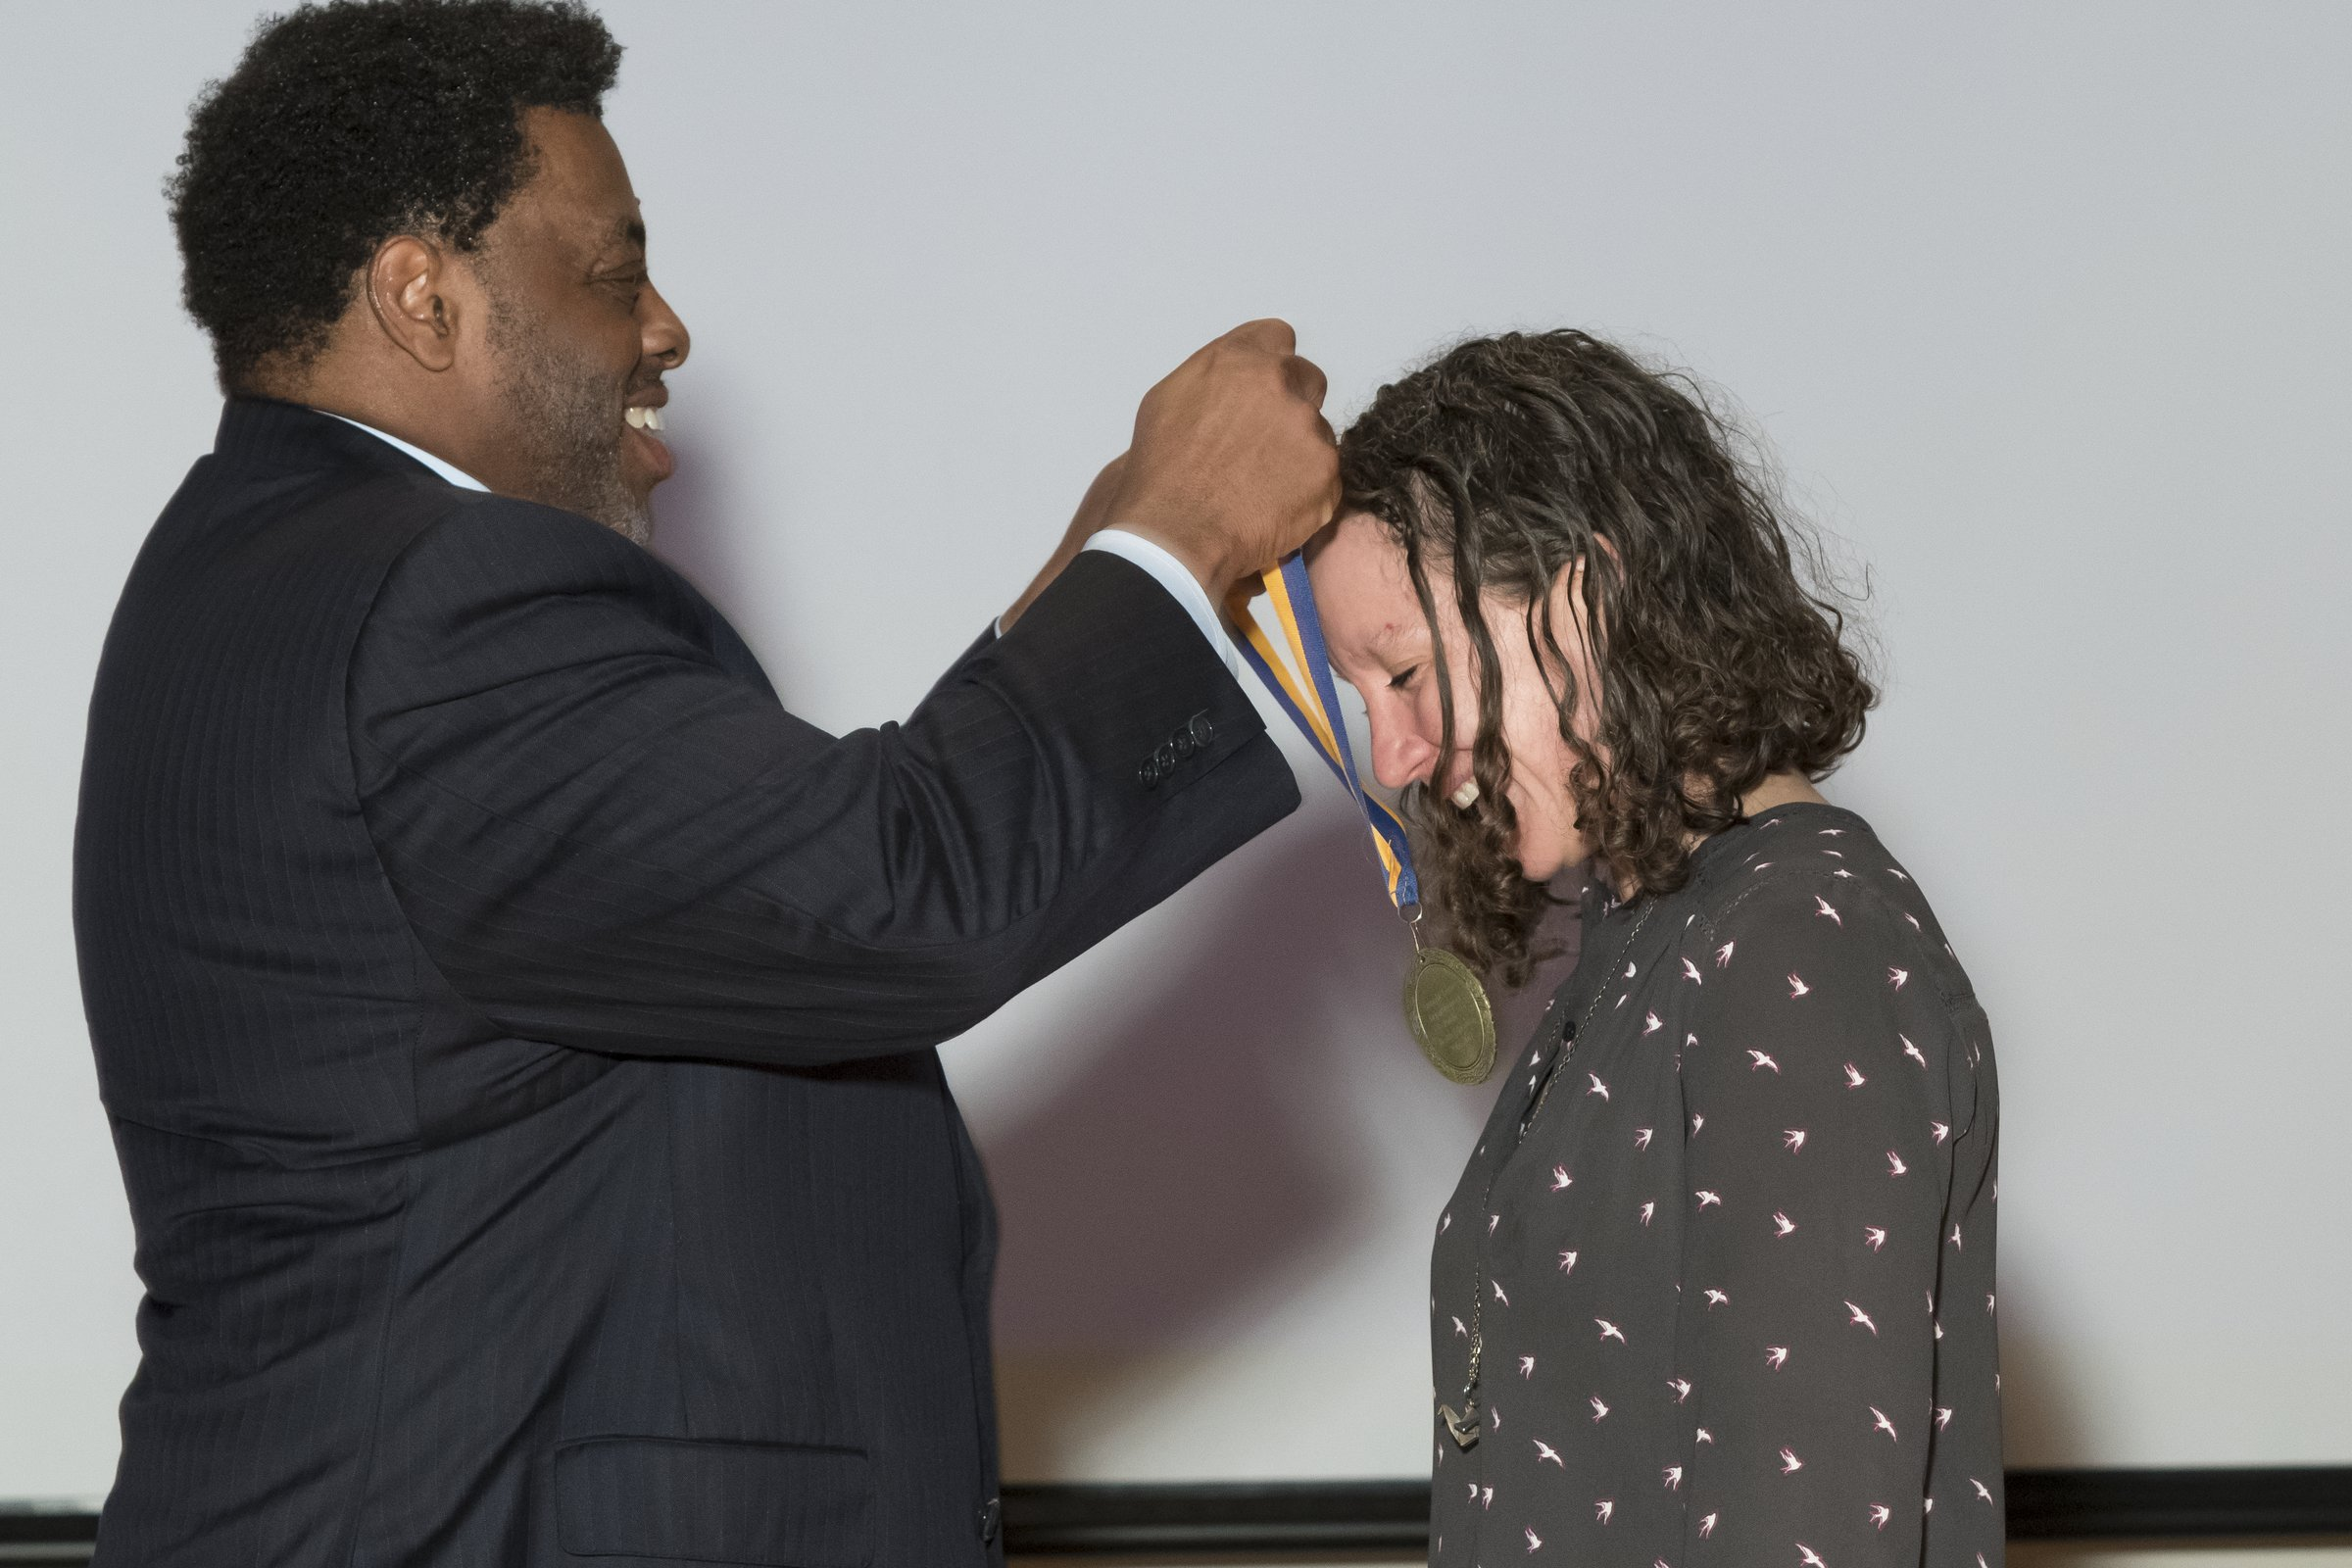 Photo of Chancellor Gilliam presenting an award to a female recipient